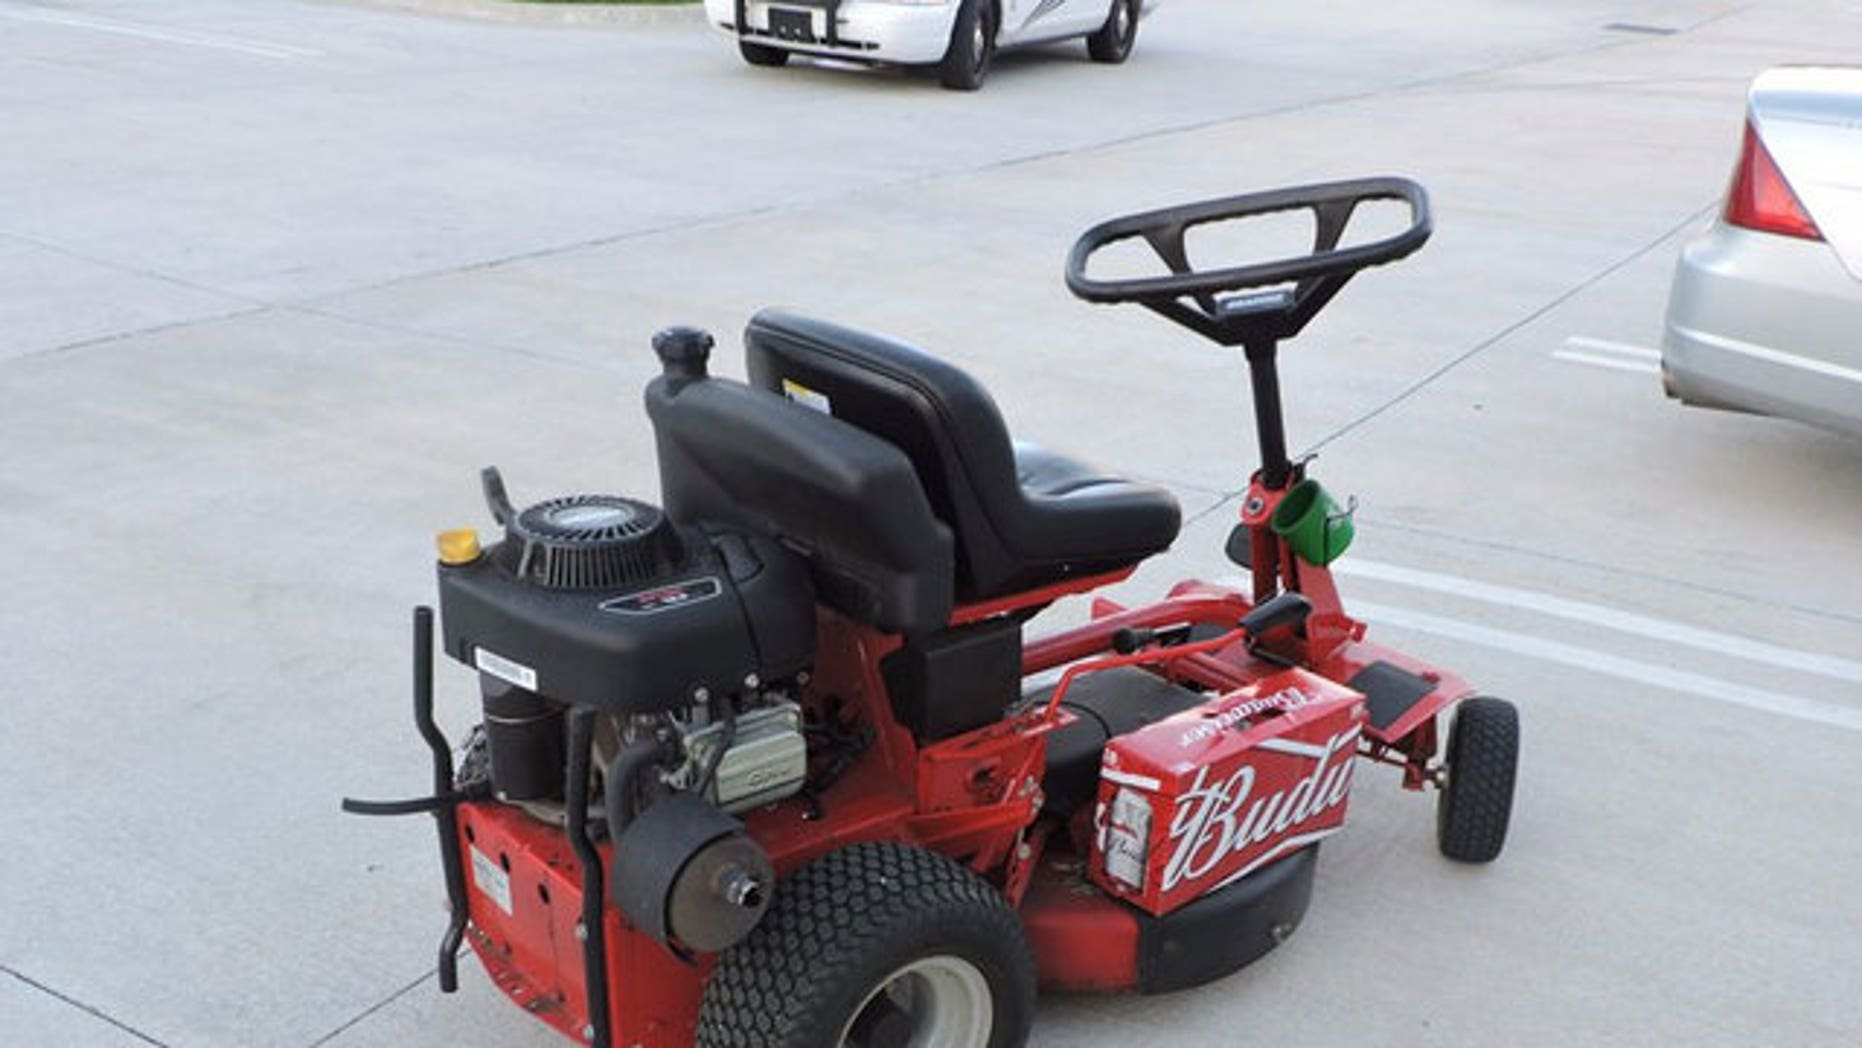 Police arrested a man in Florida after he drove down U.S. Highway 1 on a lawn mower, holding a case of beer.